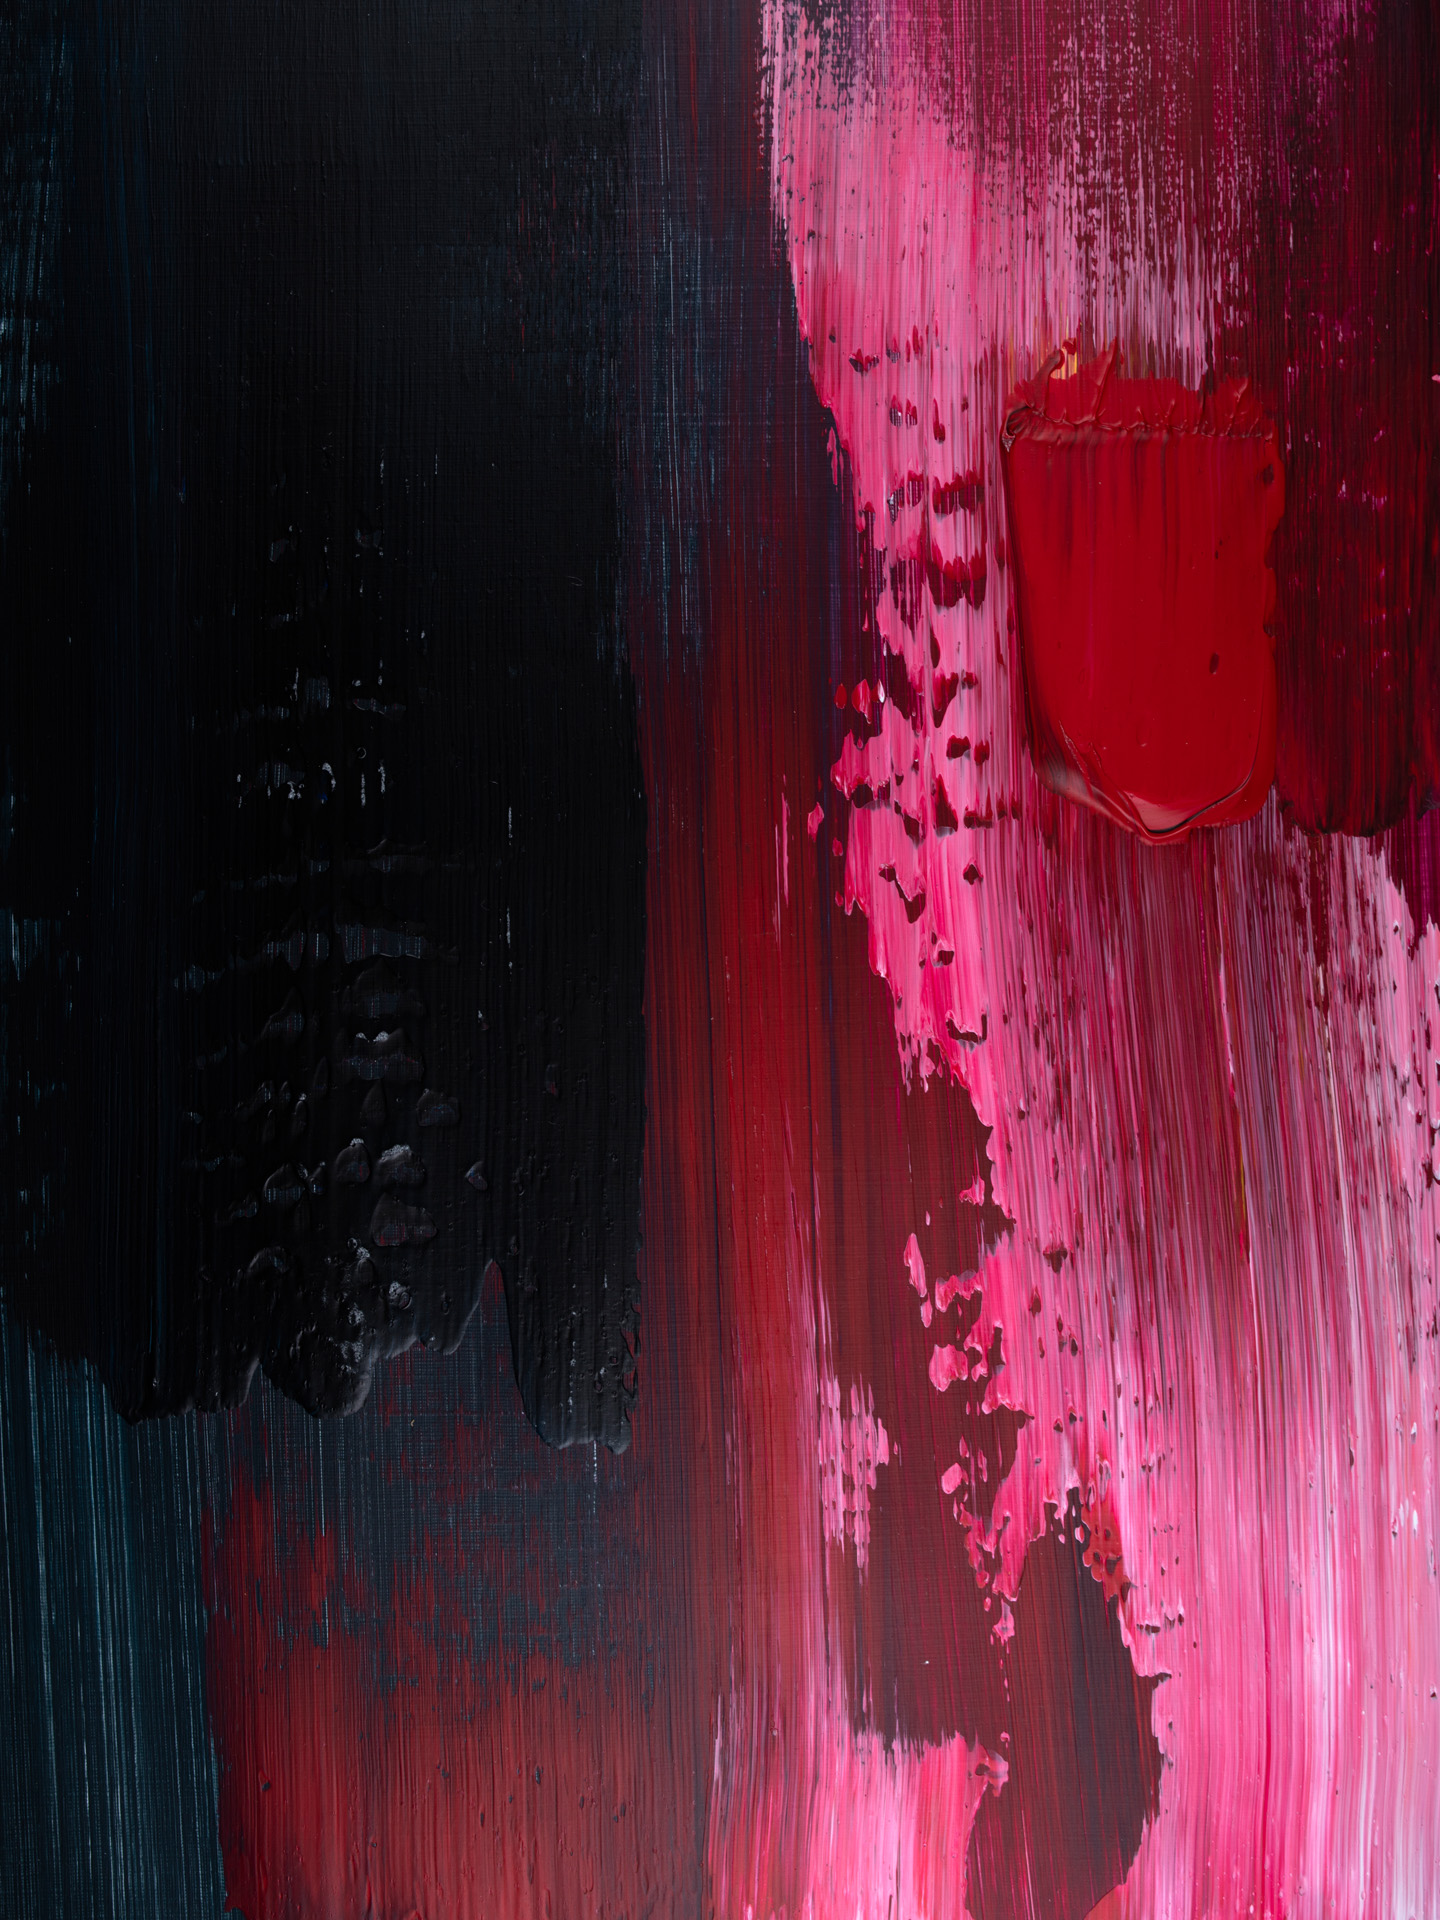 Red and Black 2876 1019, 30x40, © Ernest Bisaev